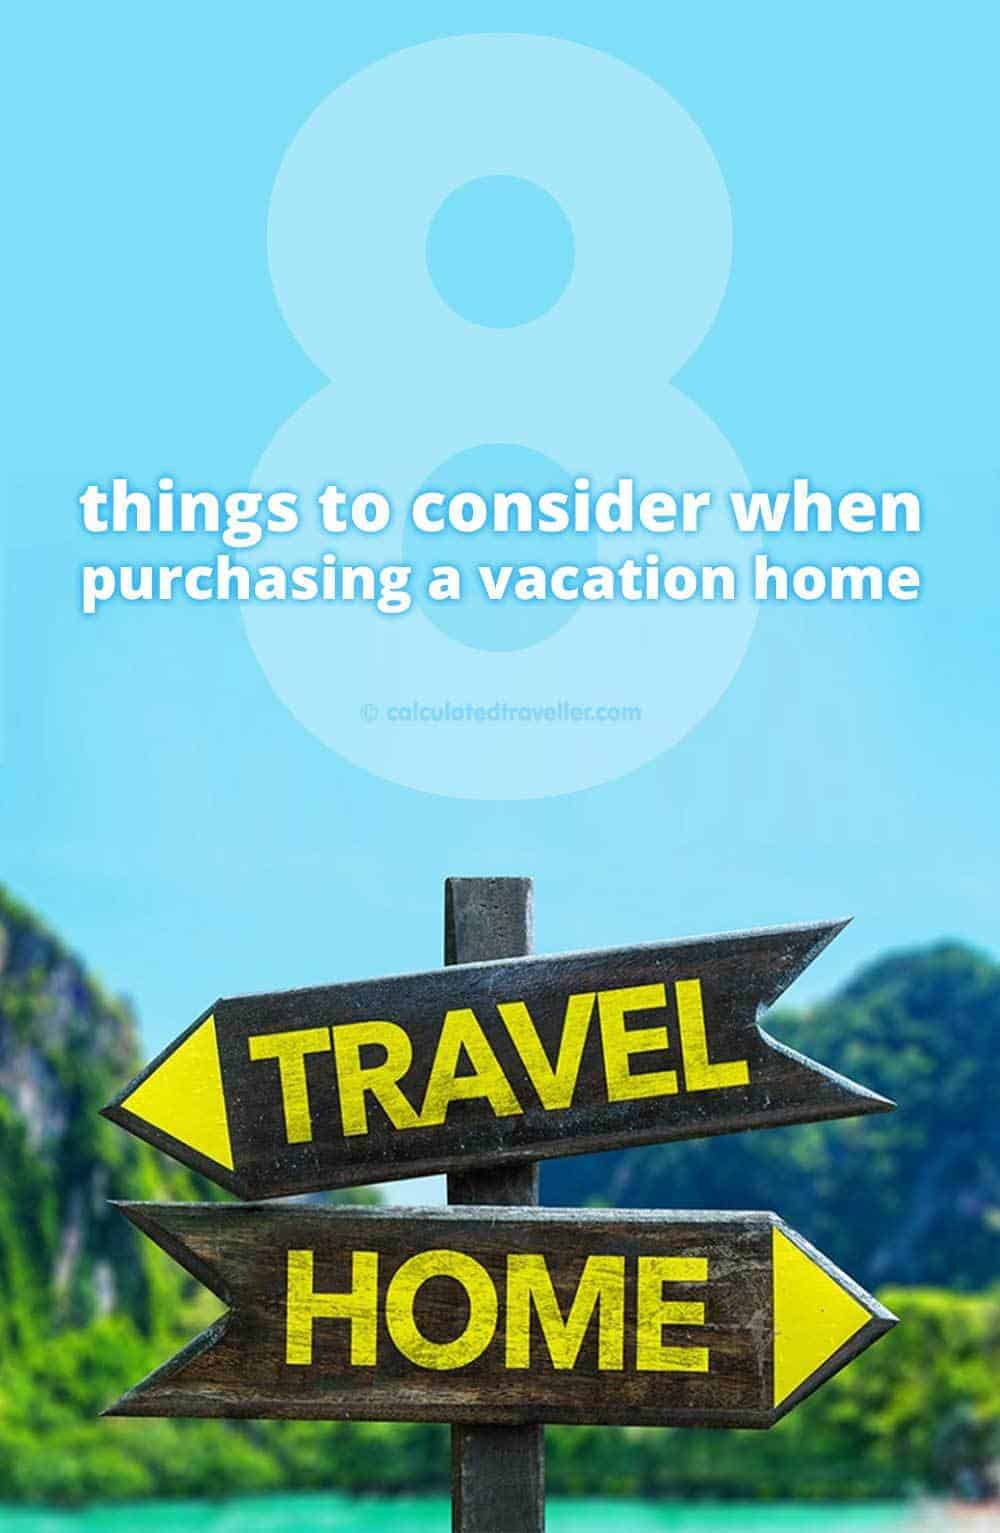 8 Things to Consider when Purchasing a Vacation Home by Calculated Traveller